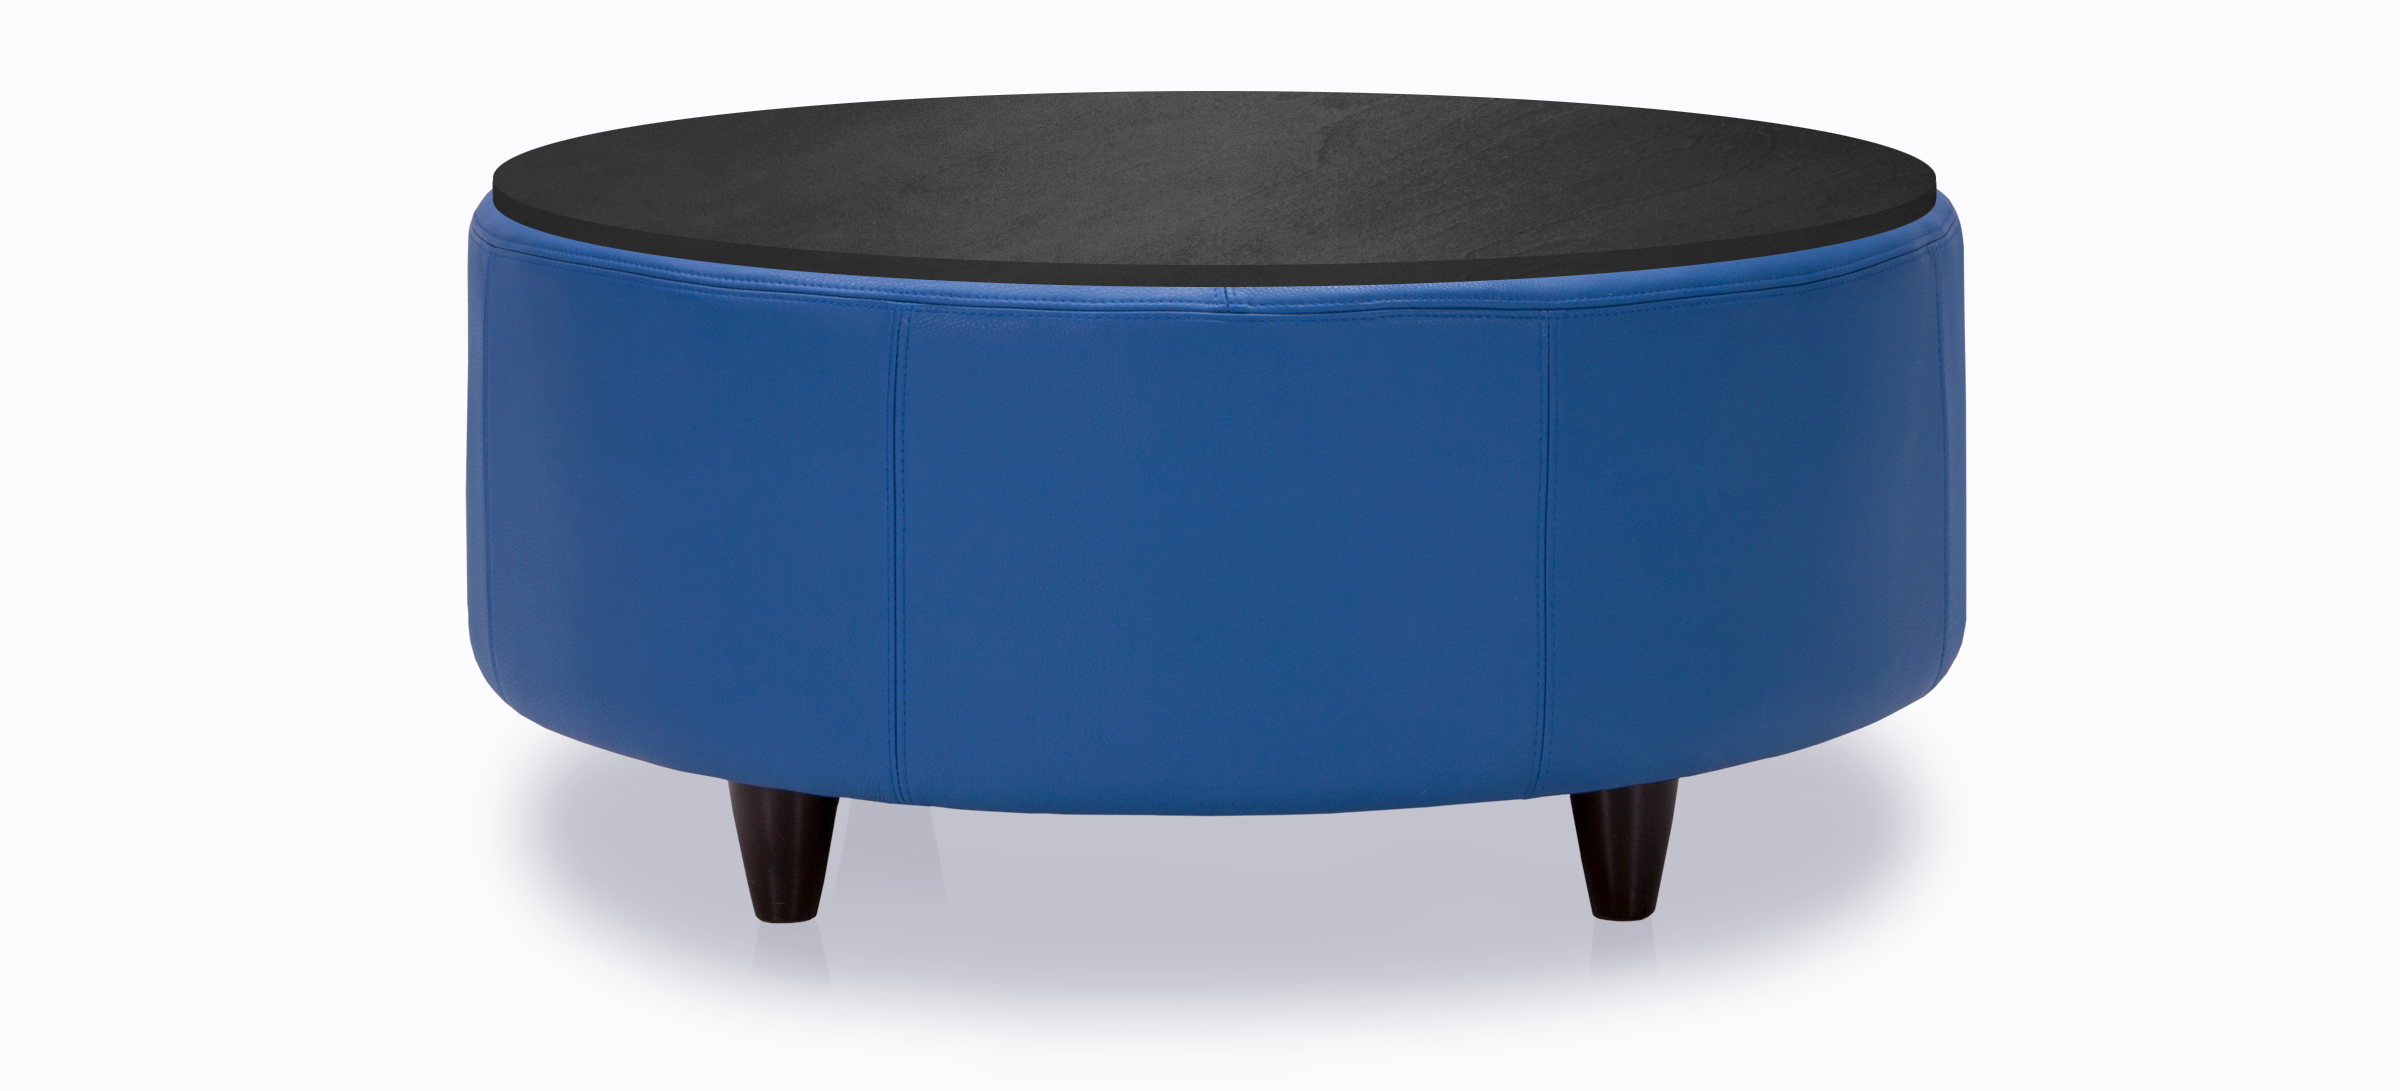 Ottoman Jelly Beans – Modern Style – Cameleon Collection Throughout Most Popular Jelly Bean Coffee Tables (View 13 of 20)